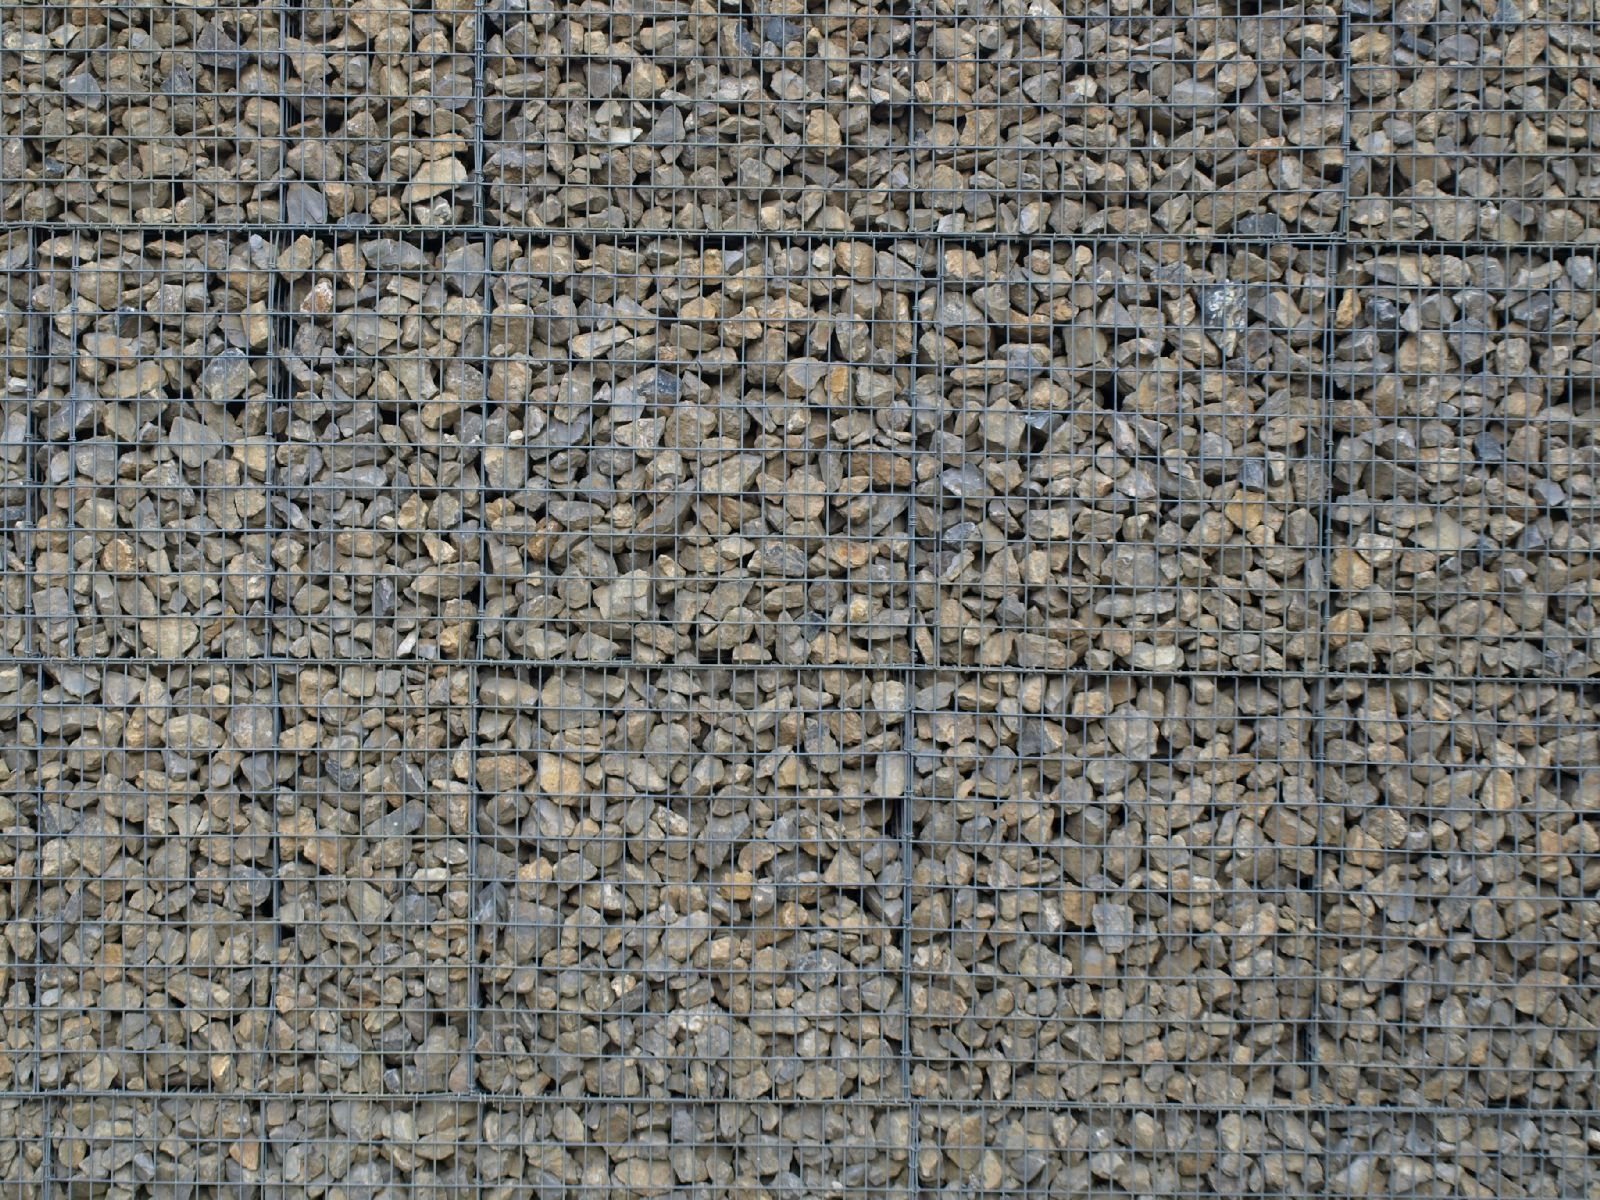 Stone_Texture_A_P9074783